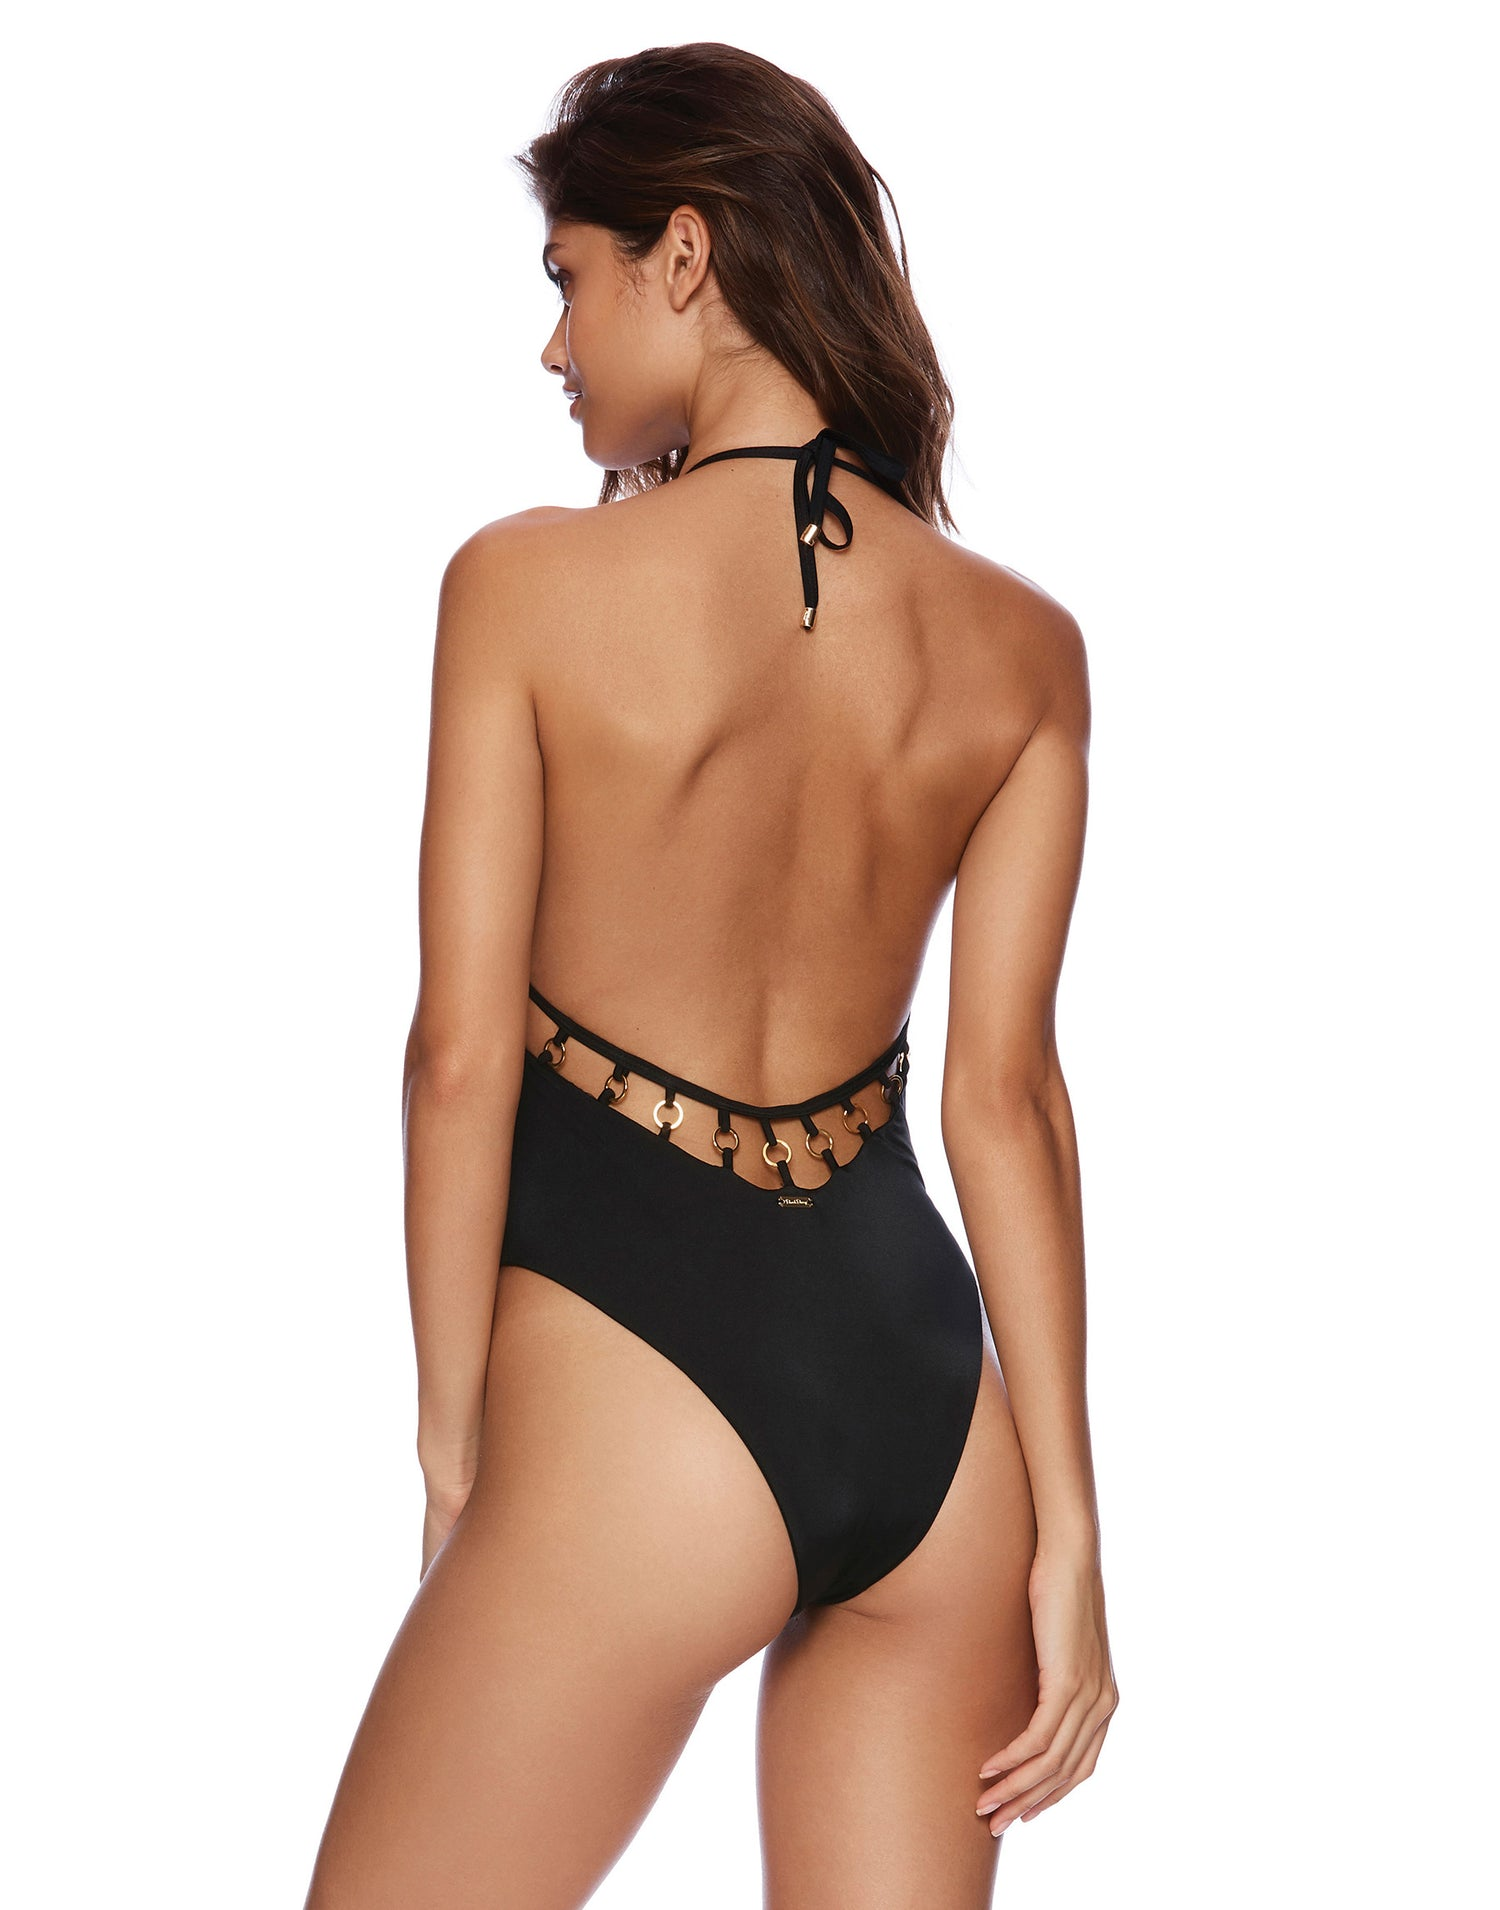 Ireland One Piece in Black Back View